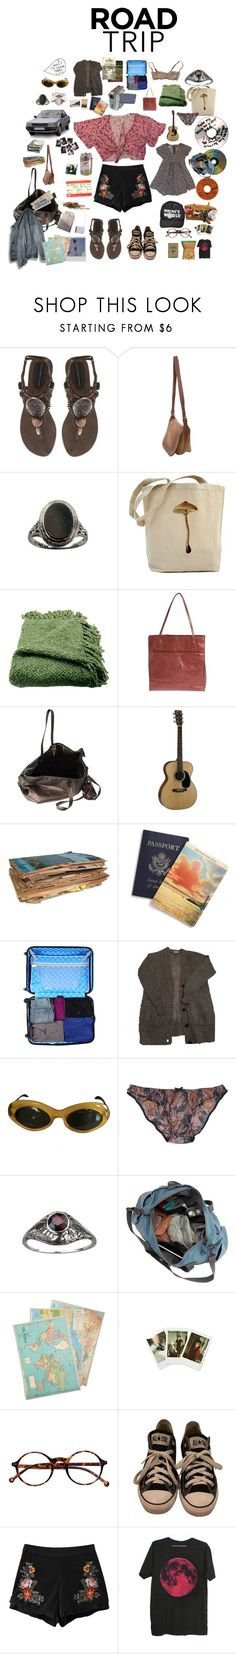 """""""road trip with lover"""" by macdemarc ❤ liked on Polyvore featuring Ilse Jacobsen Hornbaek, Coach, Woven Workz, HOBO, Rick Owens, Heys, Nasty Gal, Yves Saint Laurent, Cavallini & Co. and Fujifilm"""